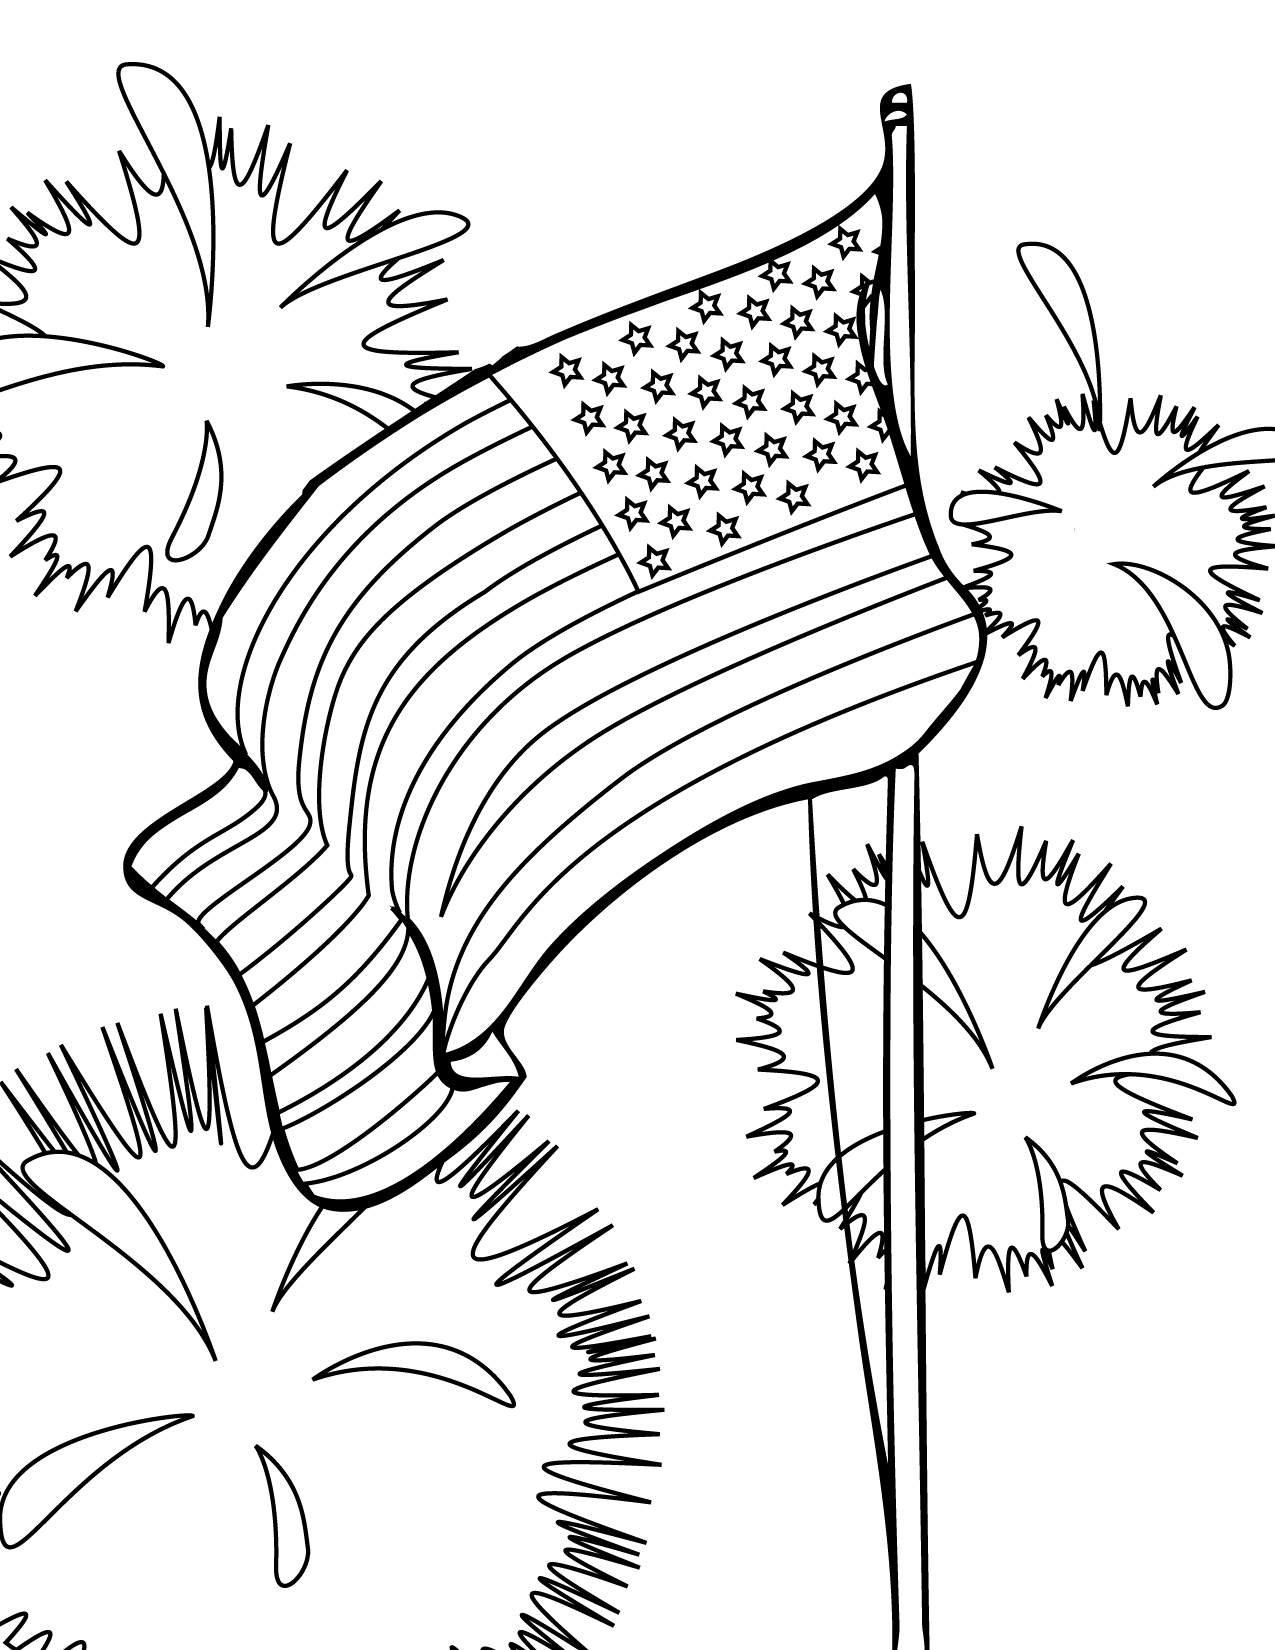 4th Of July Coloring Pages Coloring Pages To Print Coloring Pages For 4th Of July